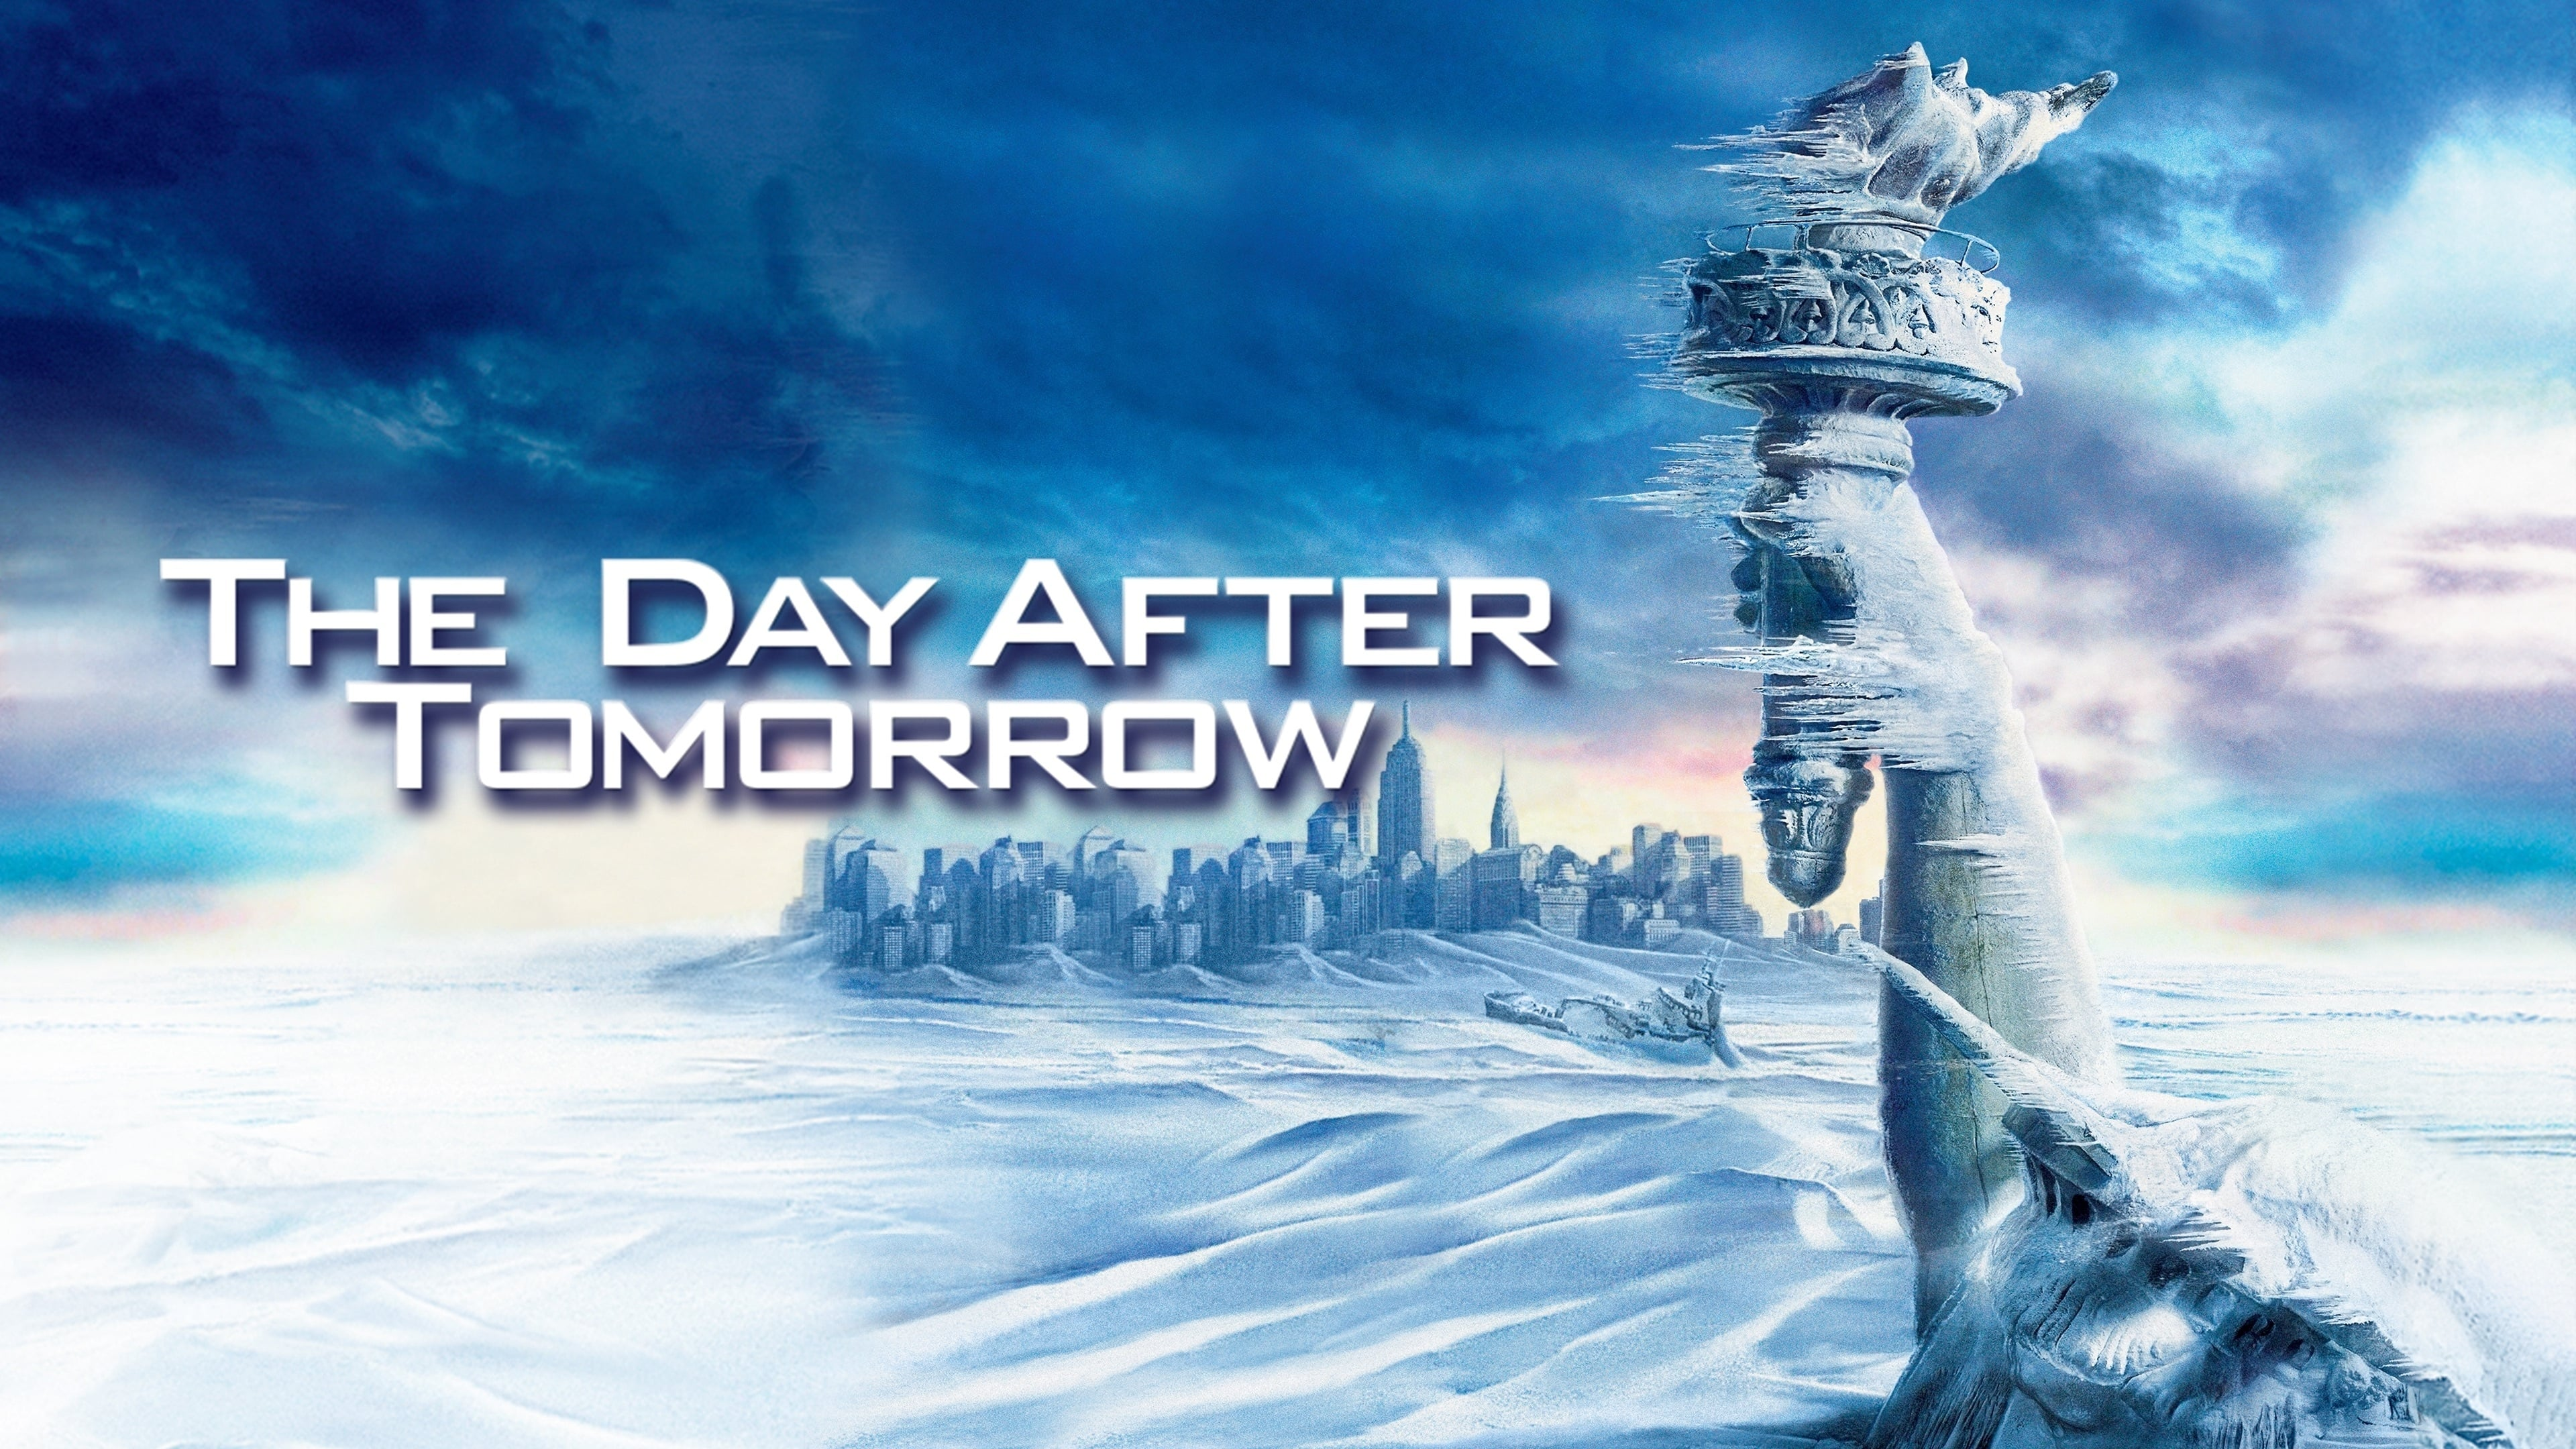 Watch The Day After Tomorrow (2004) Full Movie Online Free   TV Shows & Movies